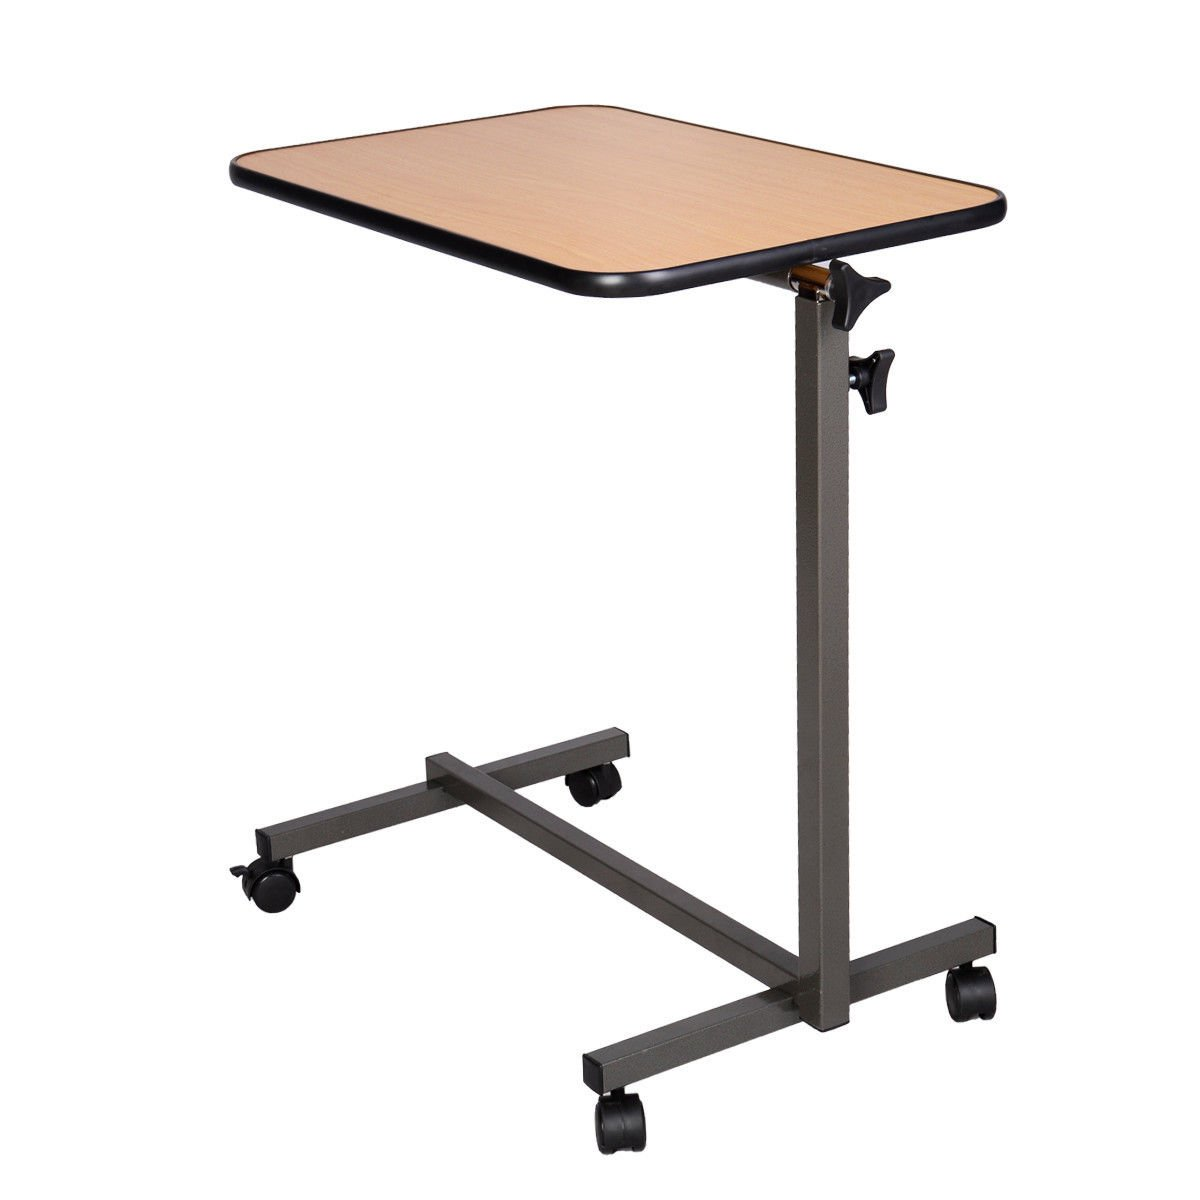 Rolling bed tray table - Amazon Com Laptop Food Tray Overbed Table Rolling Desk Hospital Over Bed With Tilting Top Kitchen Dining